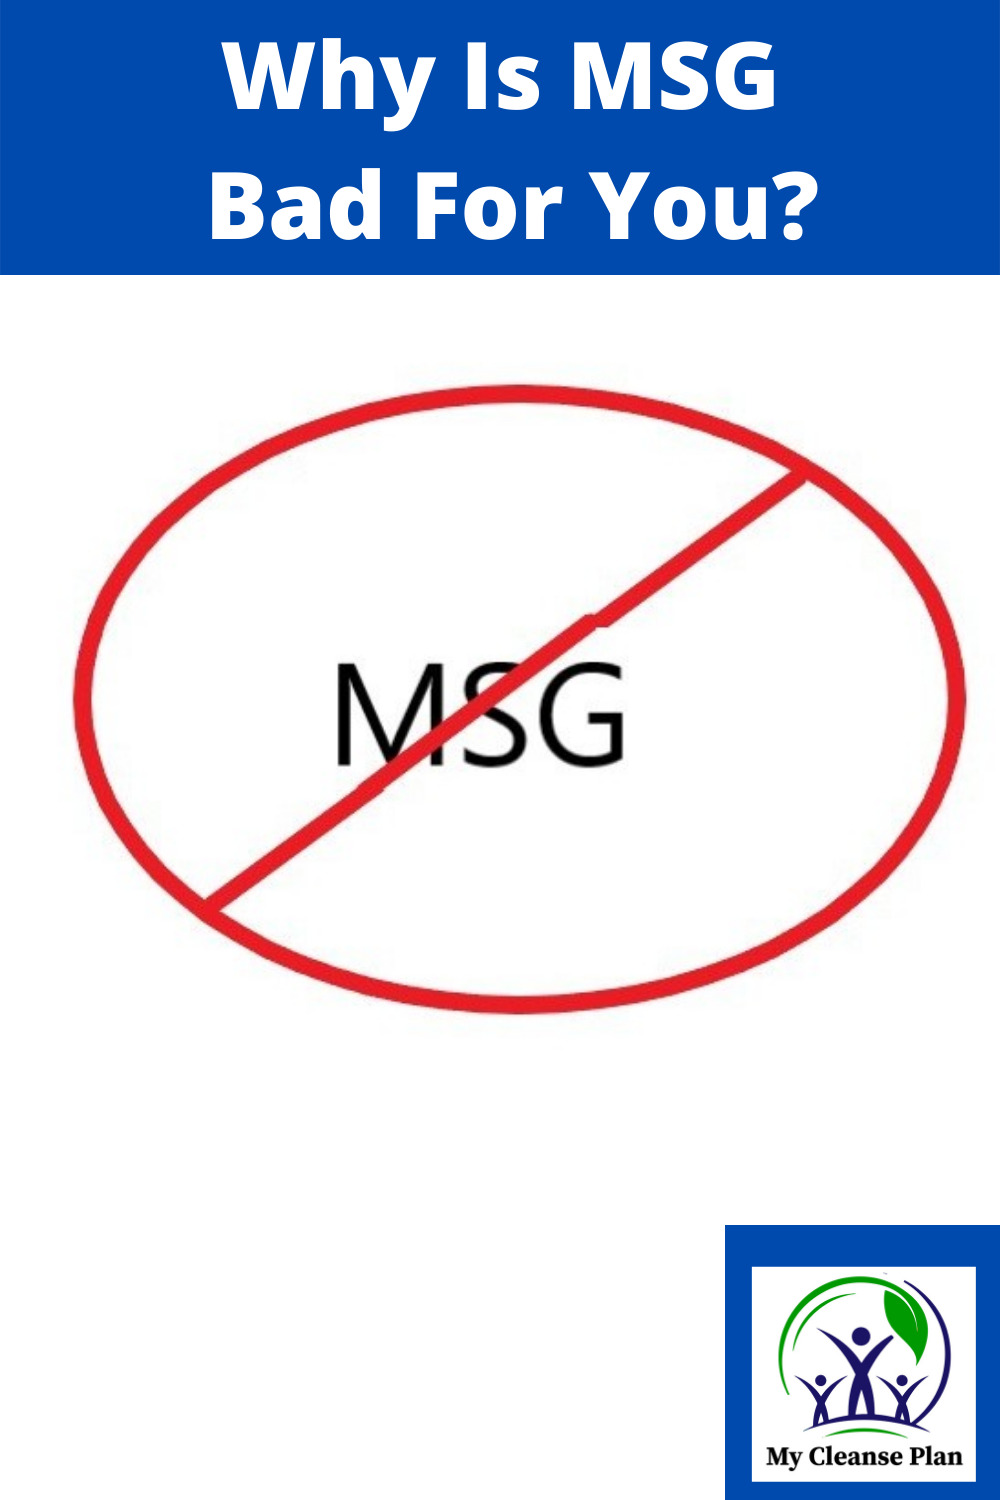 Why Is MSG Bad For You